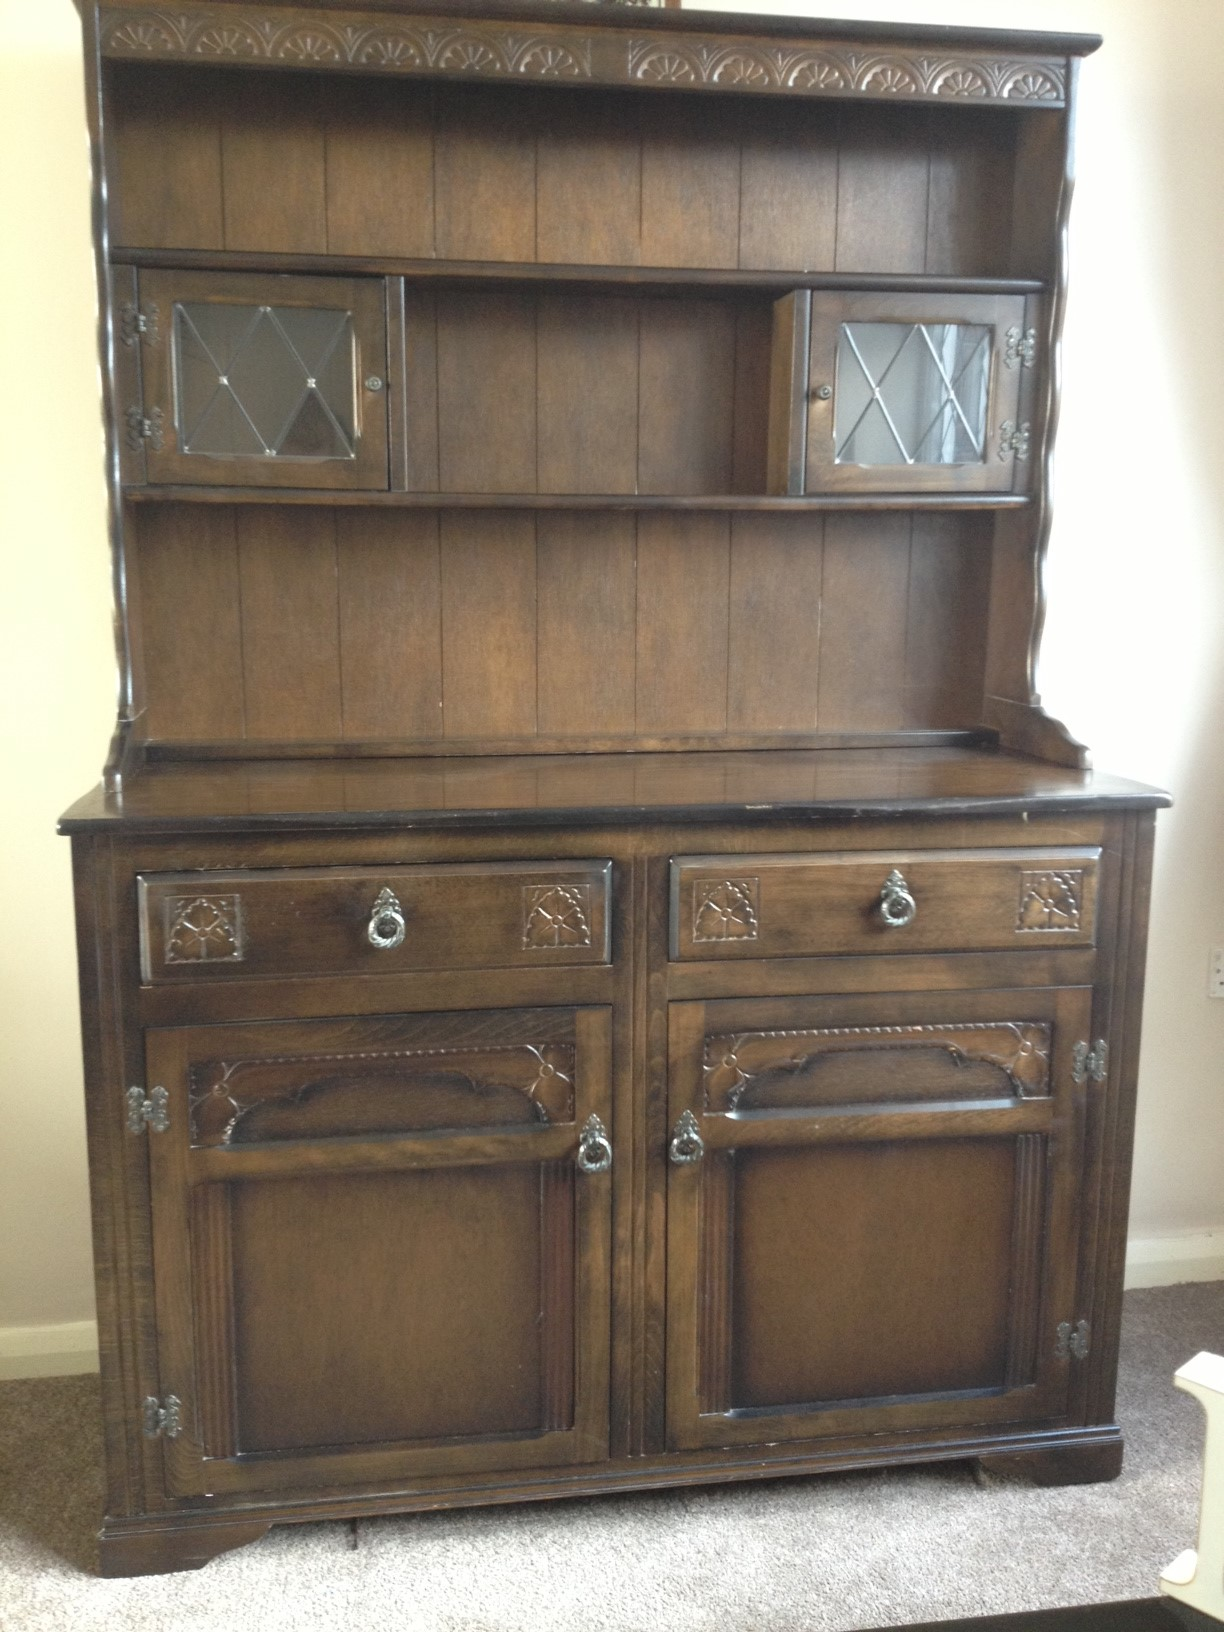 My first adventure into renovating furniture well i How to renovate old furniture